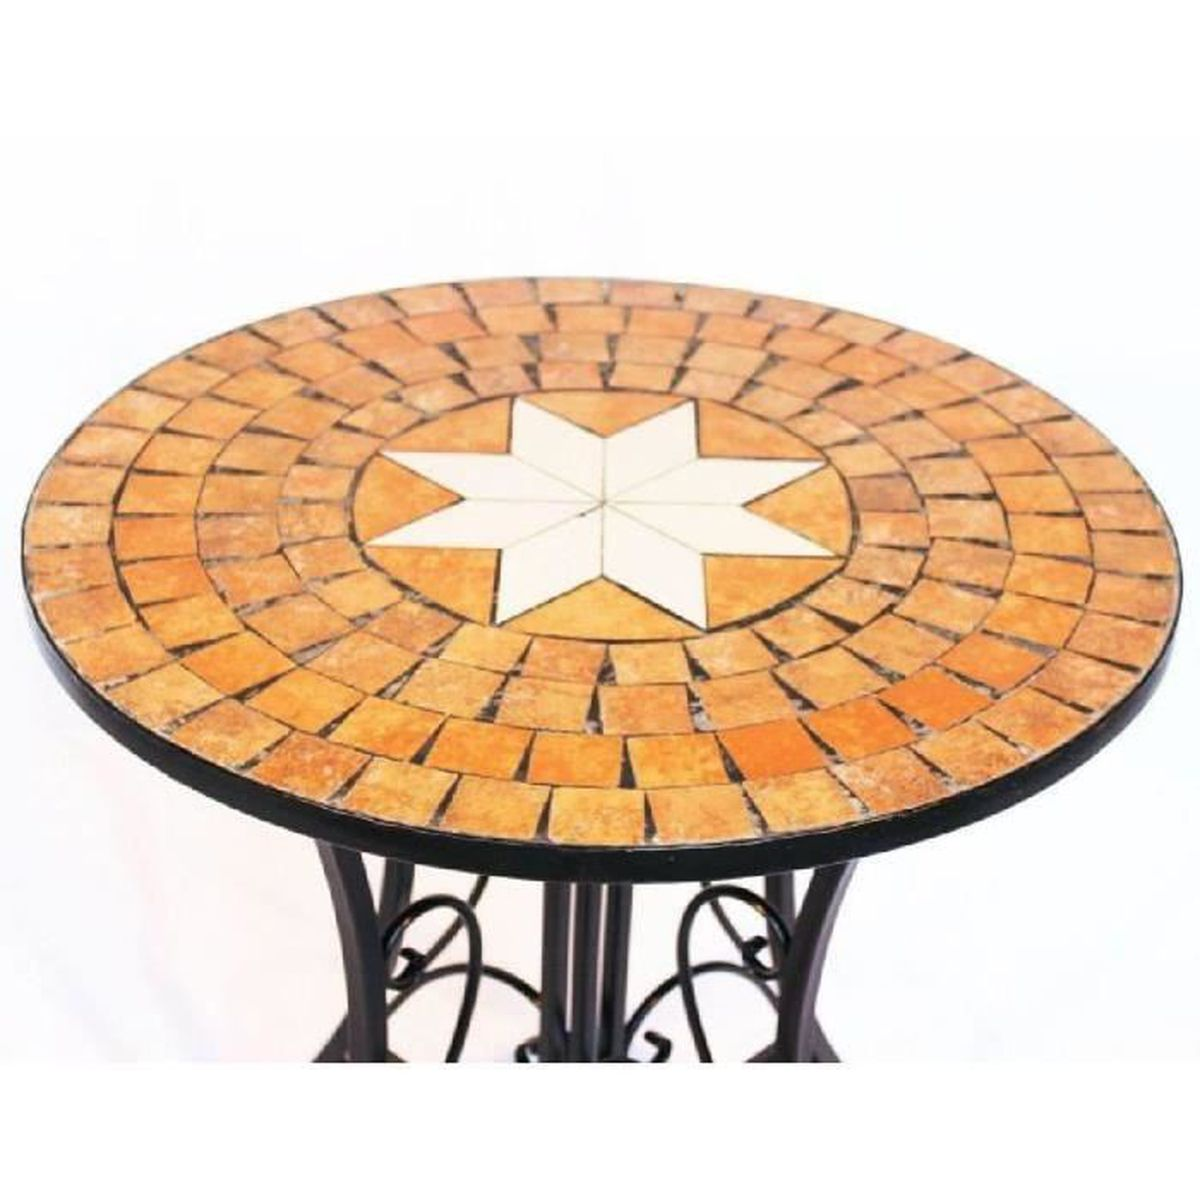 Dandibo table mosa que merano 12001 table de jardin d 60cm for Peinture table de jardin metal